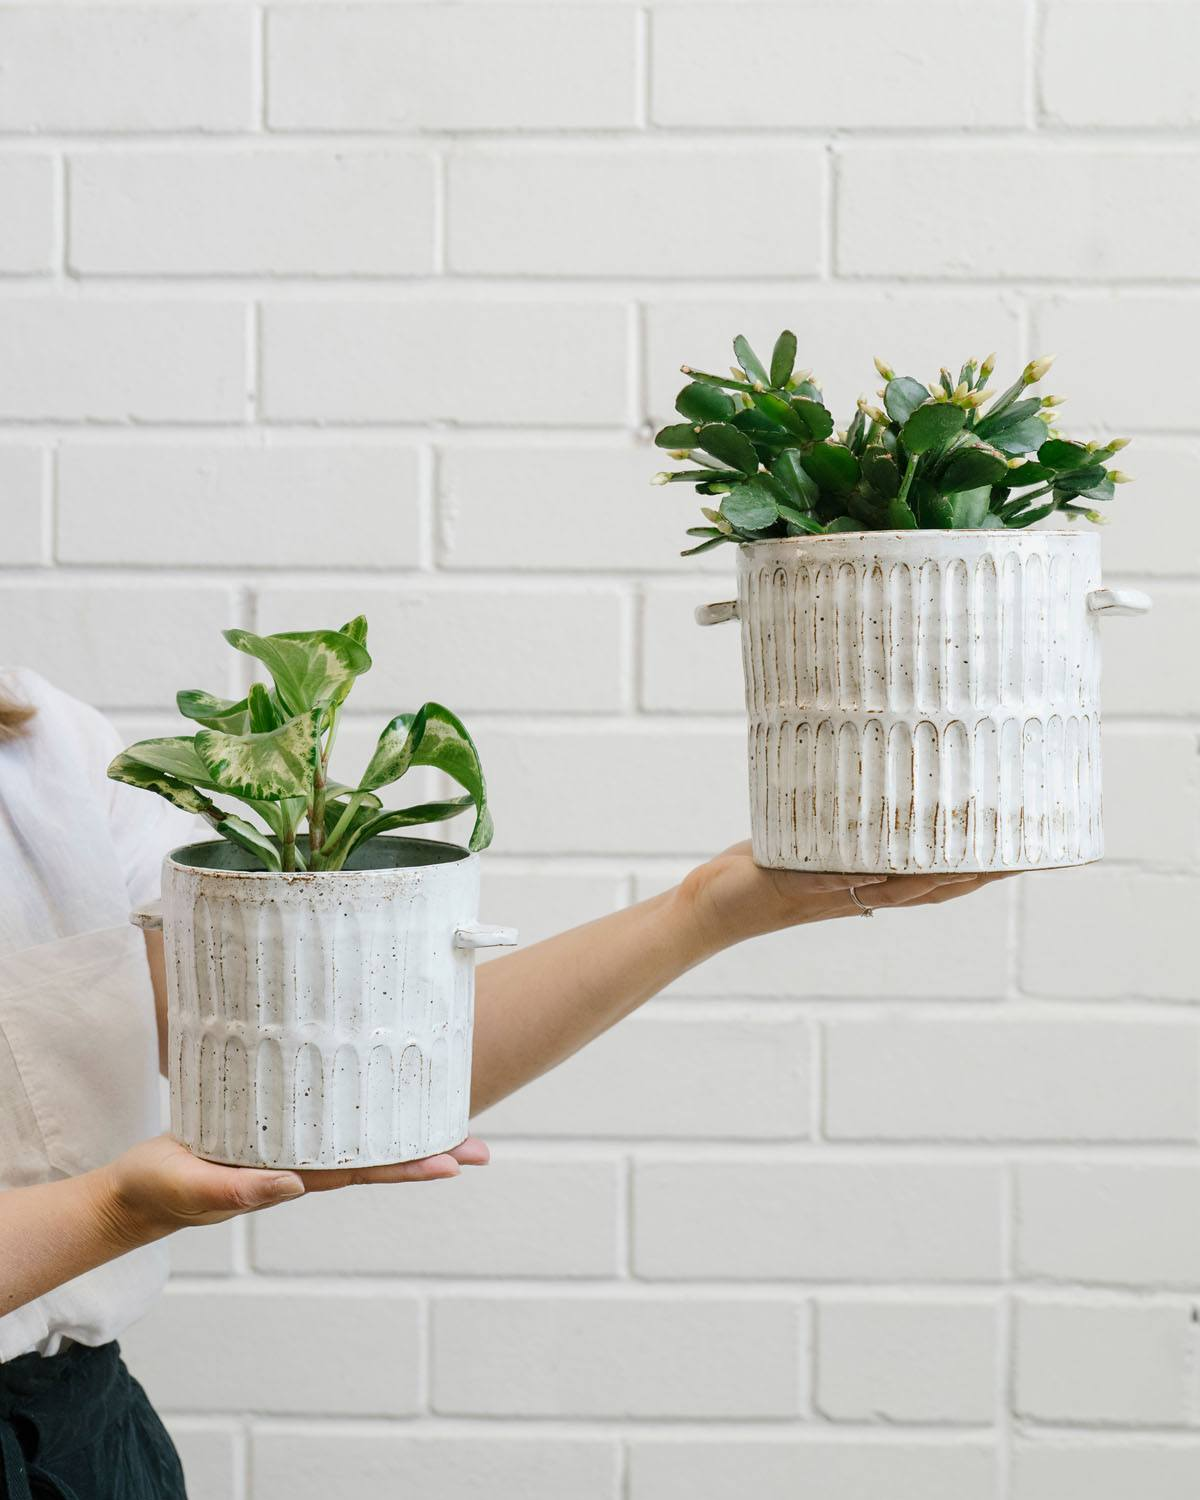 Angus & Celeste Milk Wash Artisan Plant Pot Styled Vertical Lines Set